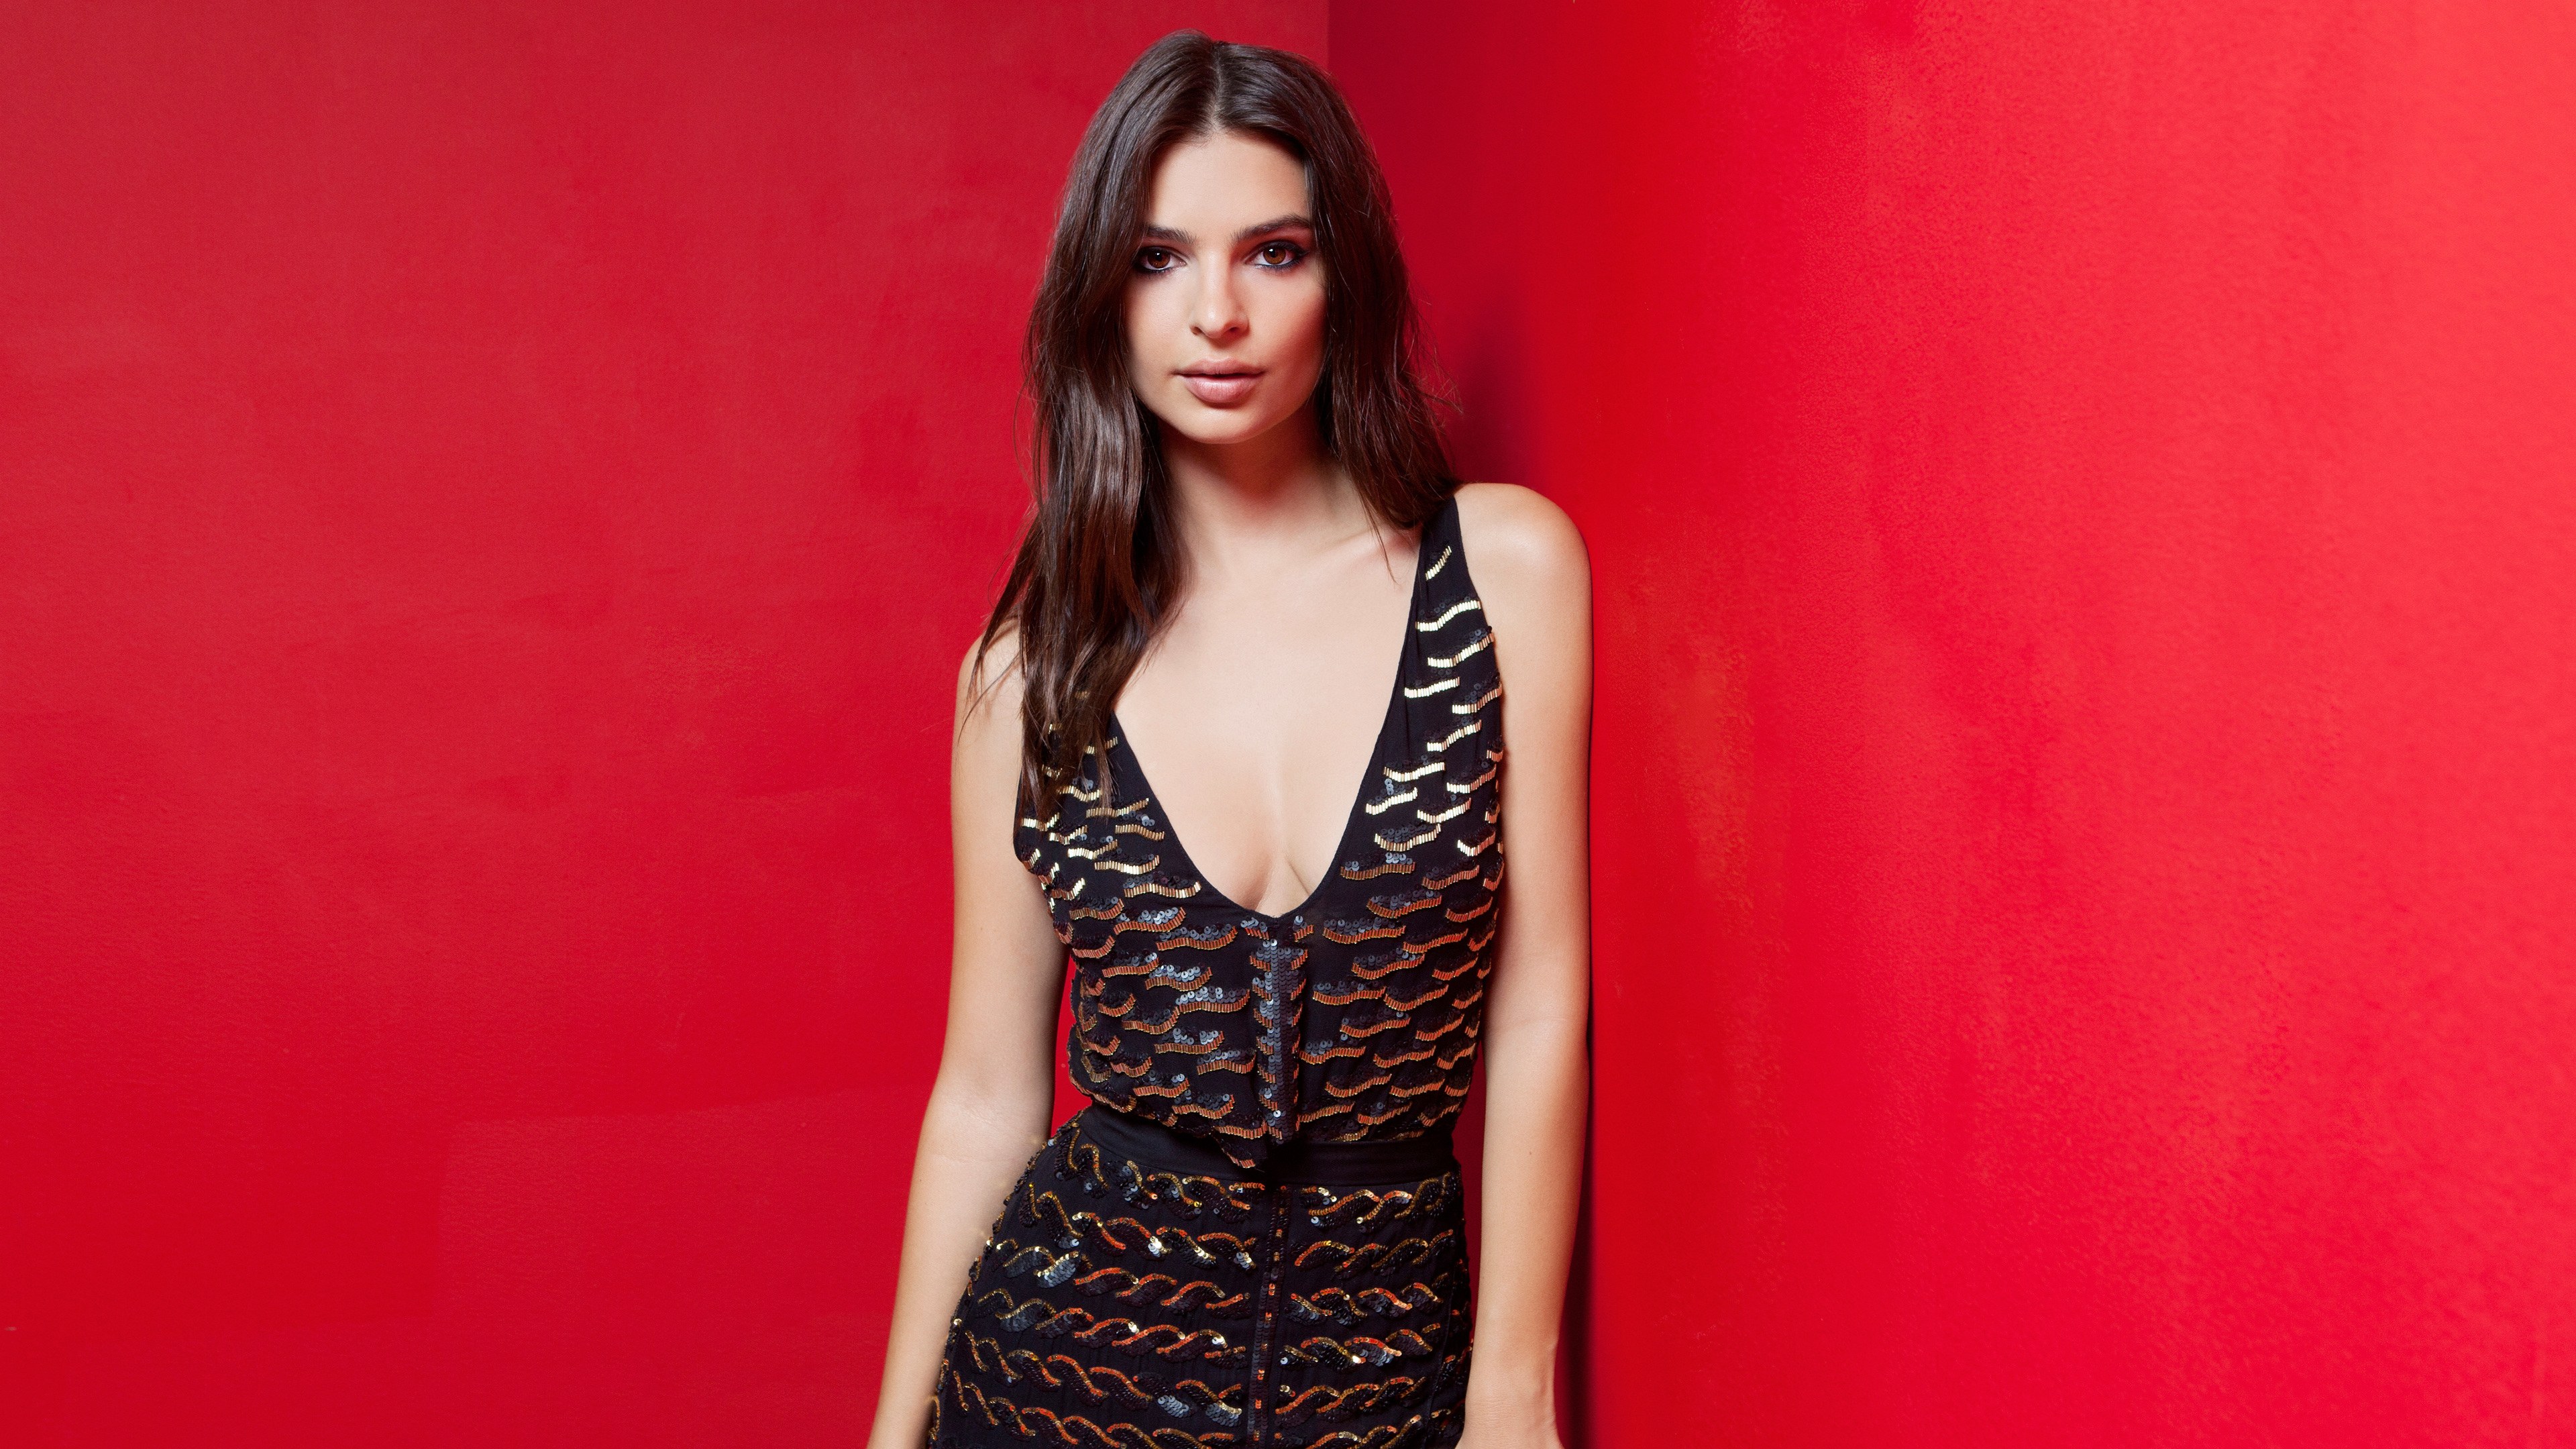 emily ratajkowski 2019 4k 5k 1536951962 - Emily Ratajkowski 2019 4k 5k - hd-wallpapers, girls wallpapers, emily ratajkowski wallpapers, celebrities wallpapers, 5k wallpapers, 4k-wallpapers